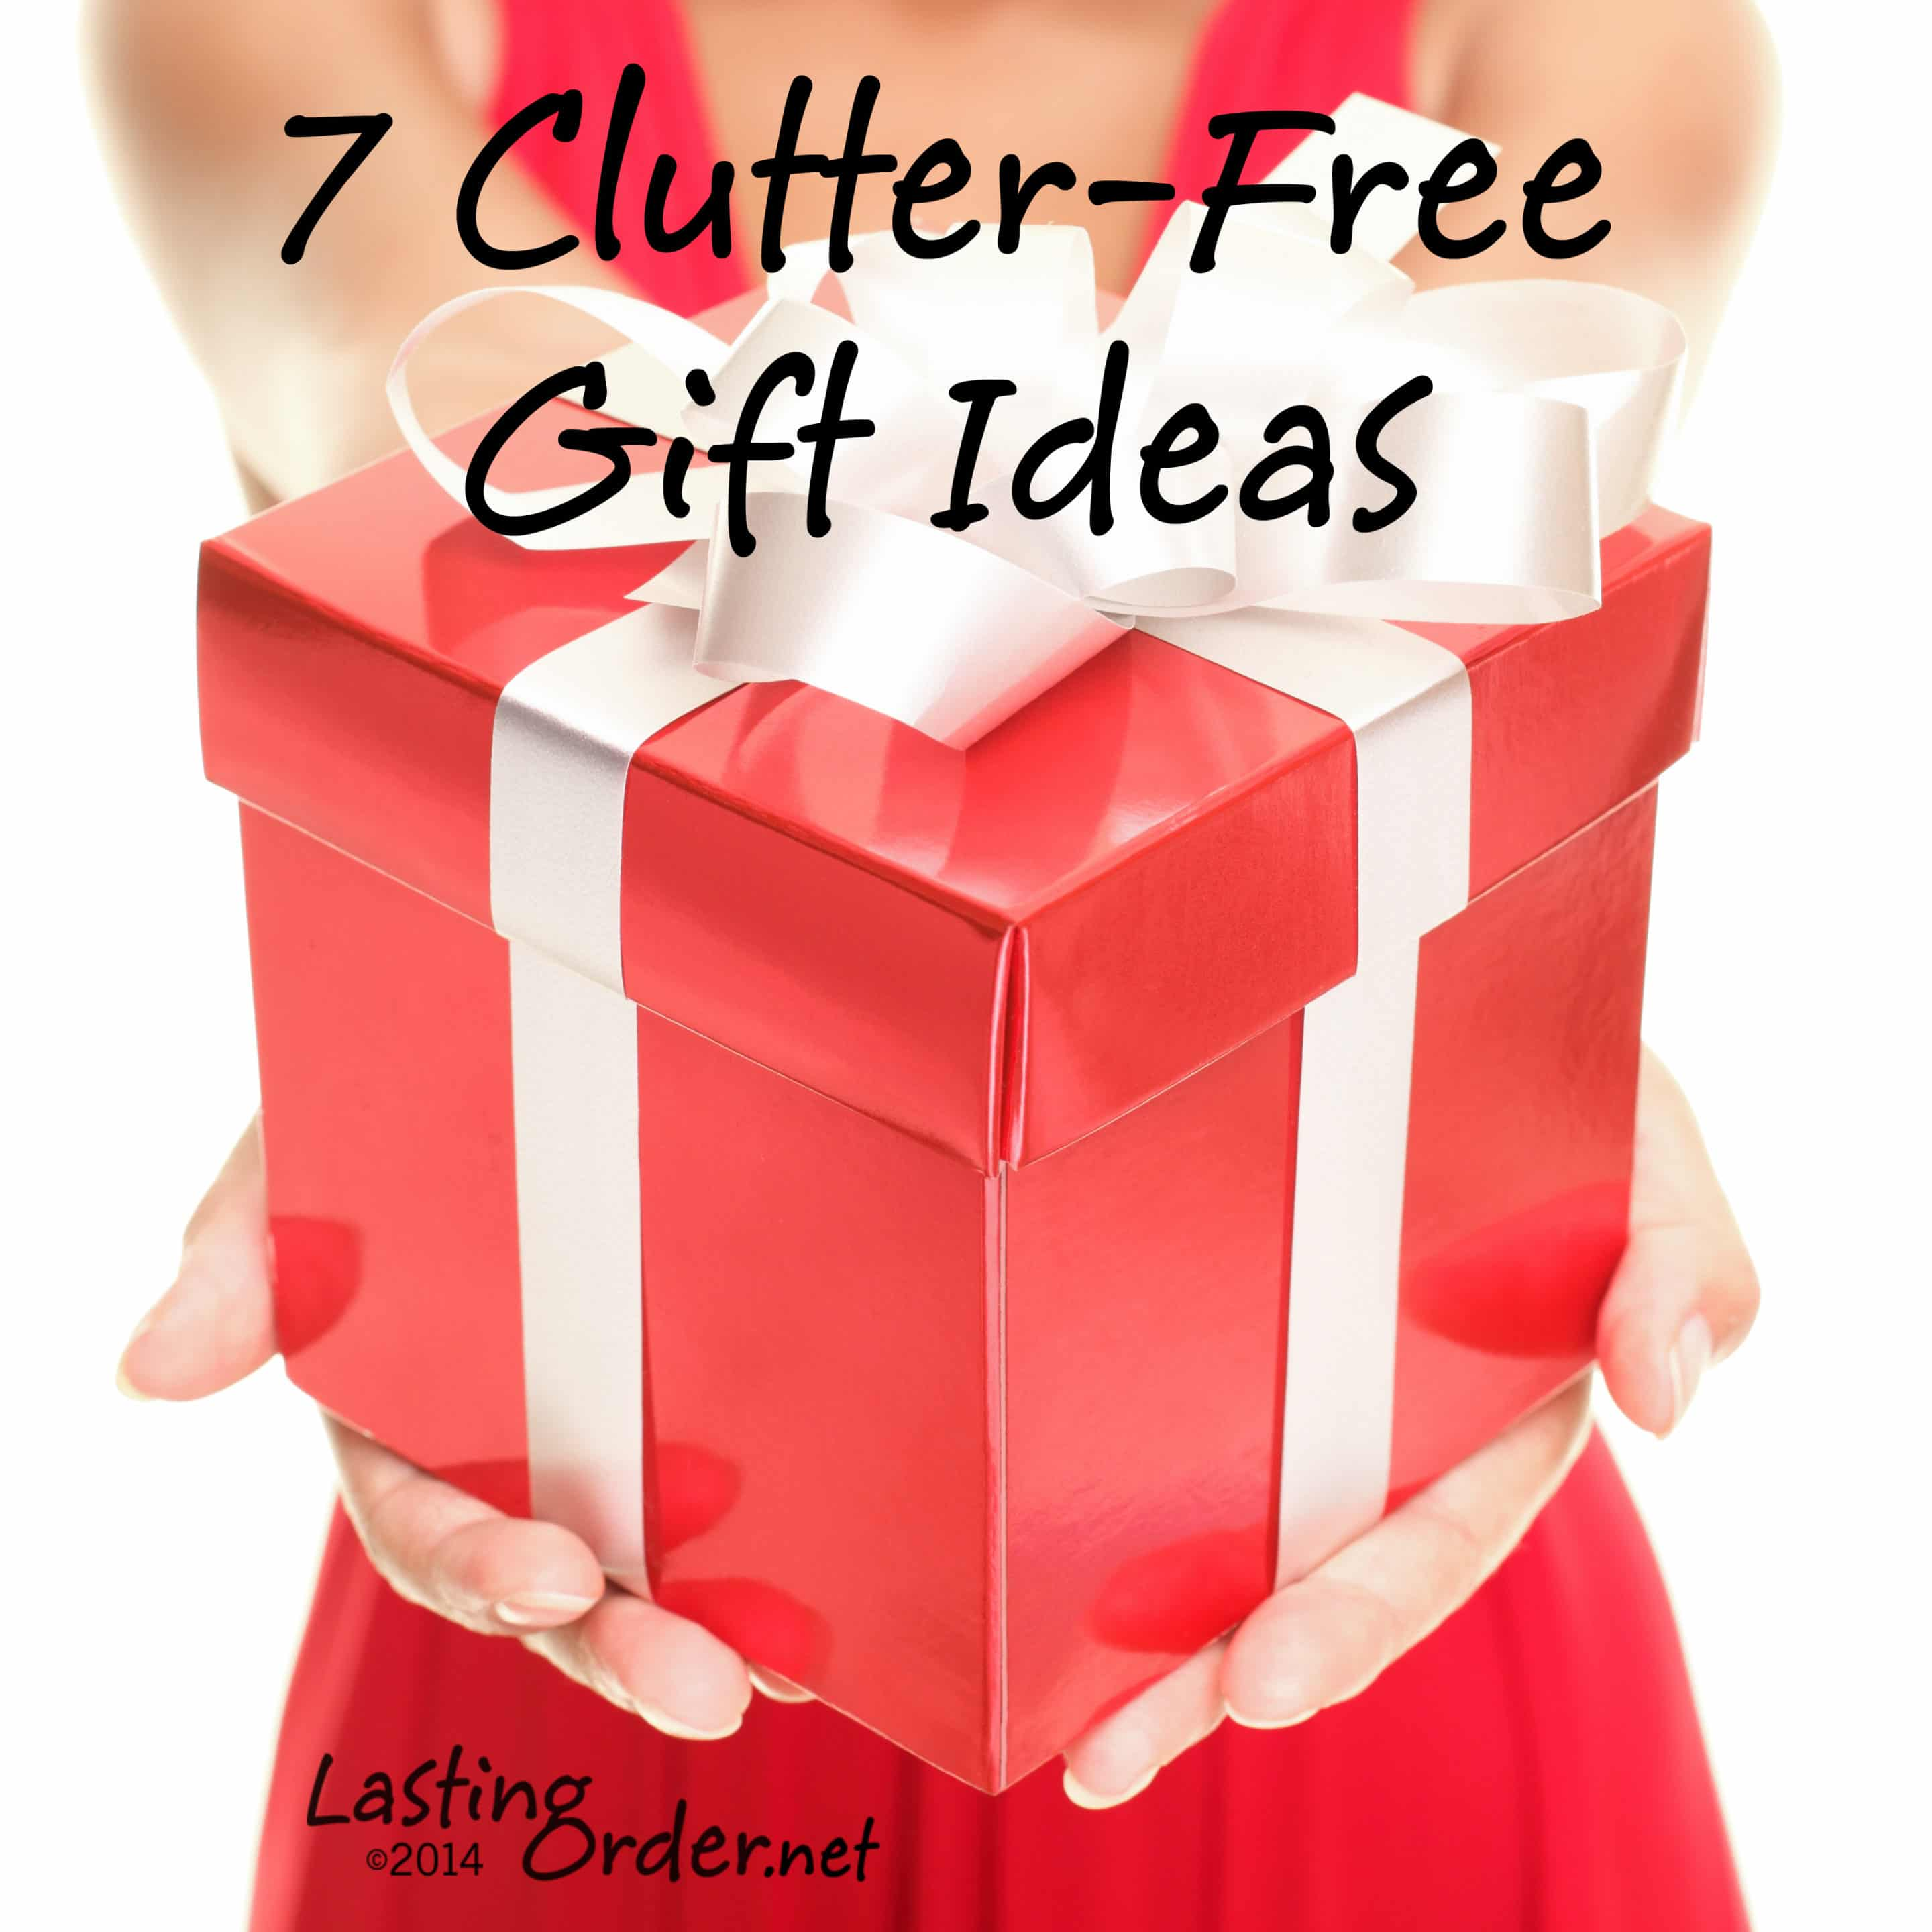 7 Clutter-Free Gift Ideas {Lifestyles Visit November 2014}